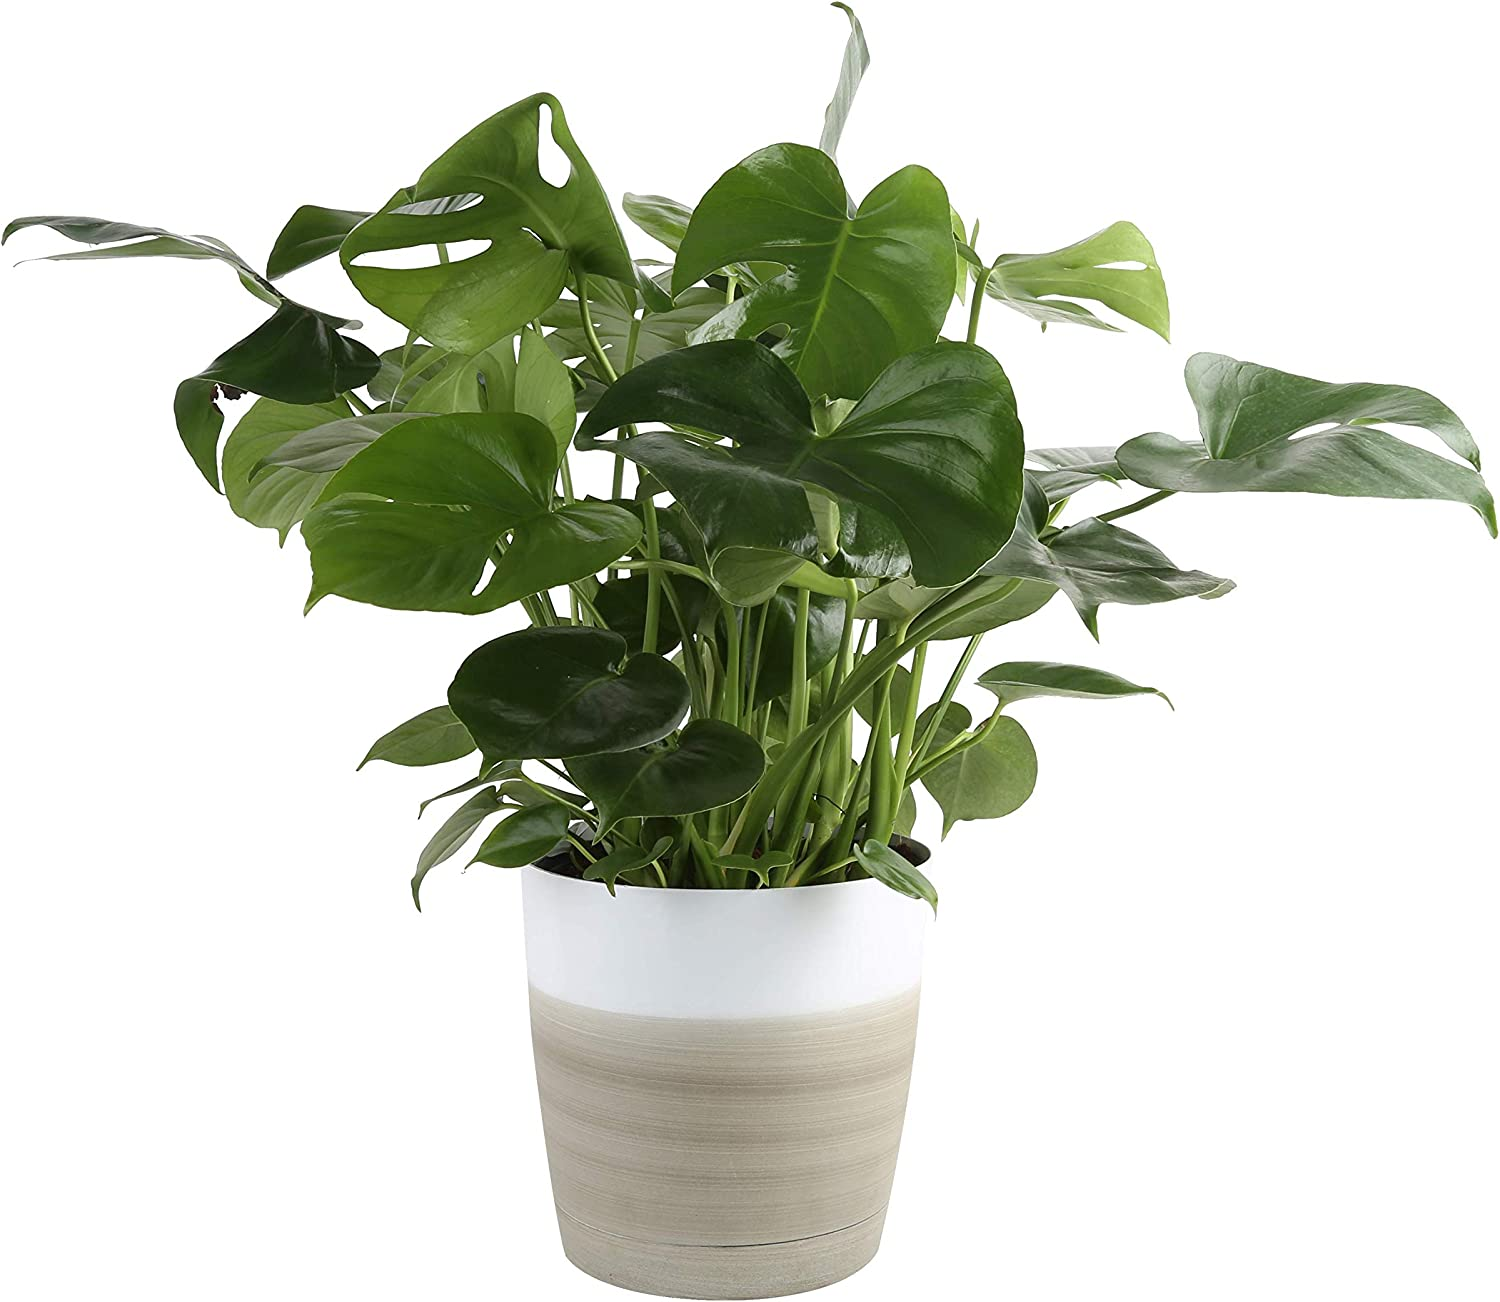 Amazon Com Costa Farms Split Leaf Philodendron Monstera Deliciosa Live Indoor Plant 2 To 3 Feet Tall Ships With Décor Planter Fresh From Our Farm Excellent Gift Or Home Décor Garden Outdoor